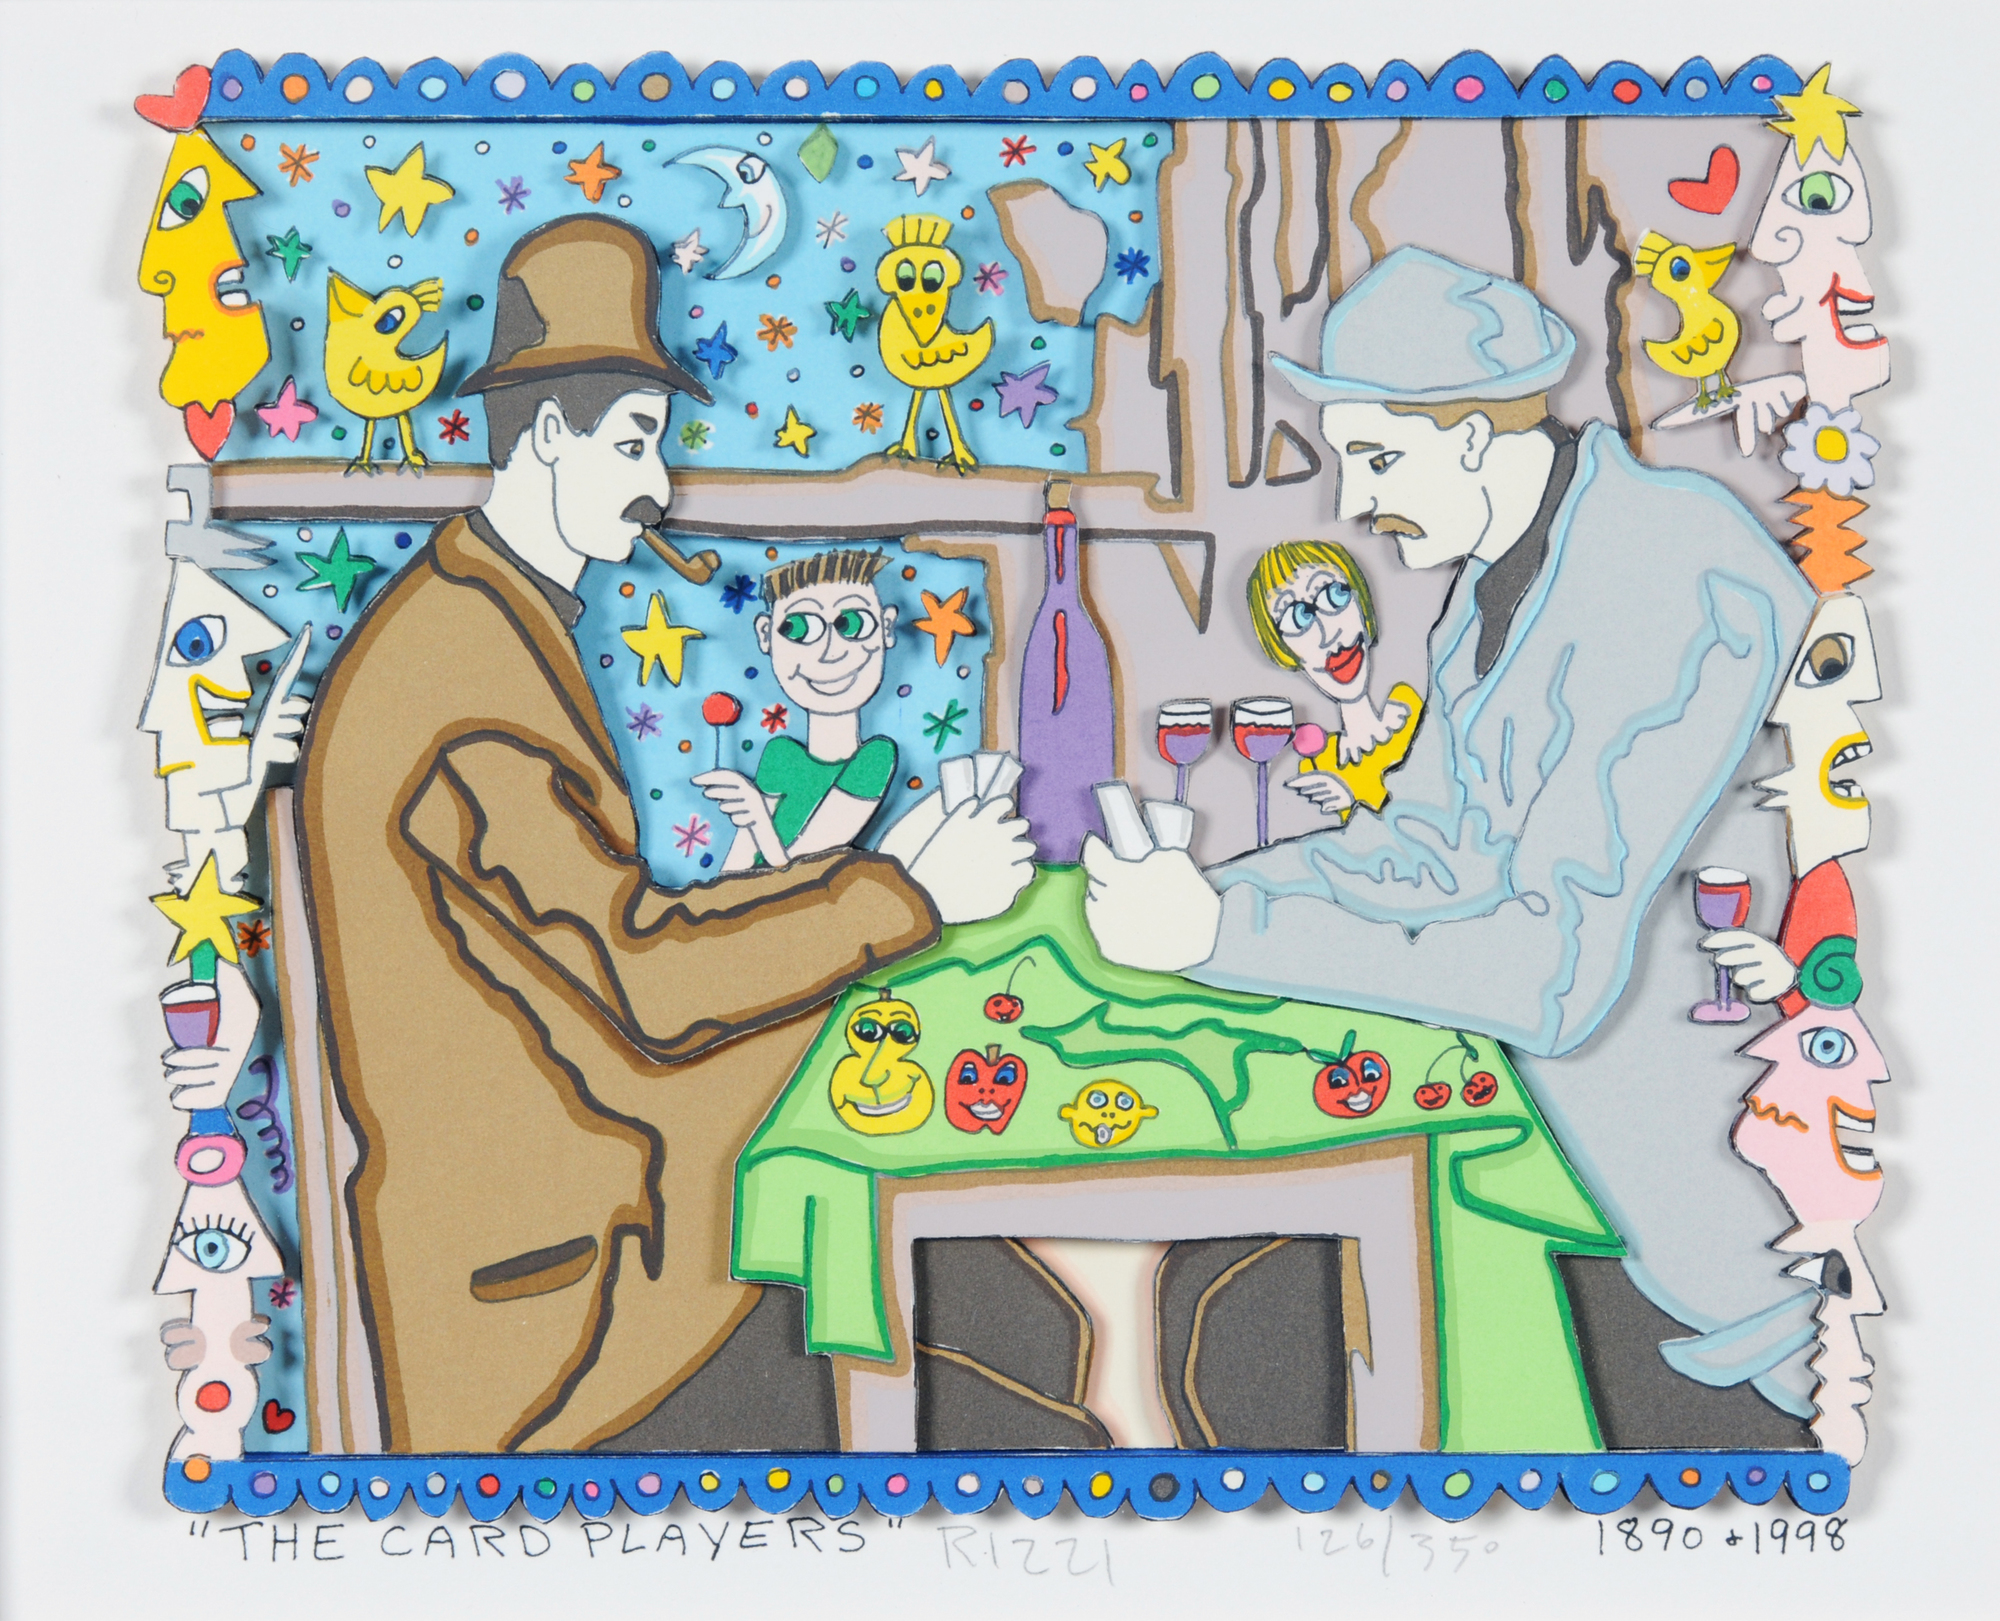 Rizzi James, The Card Players